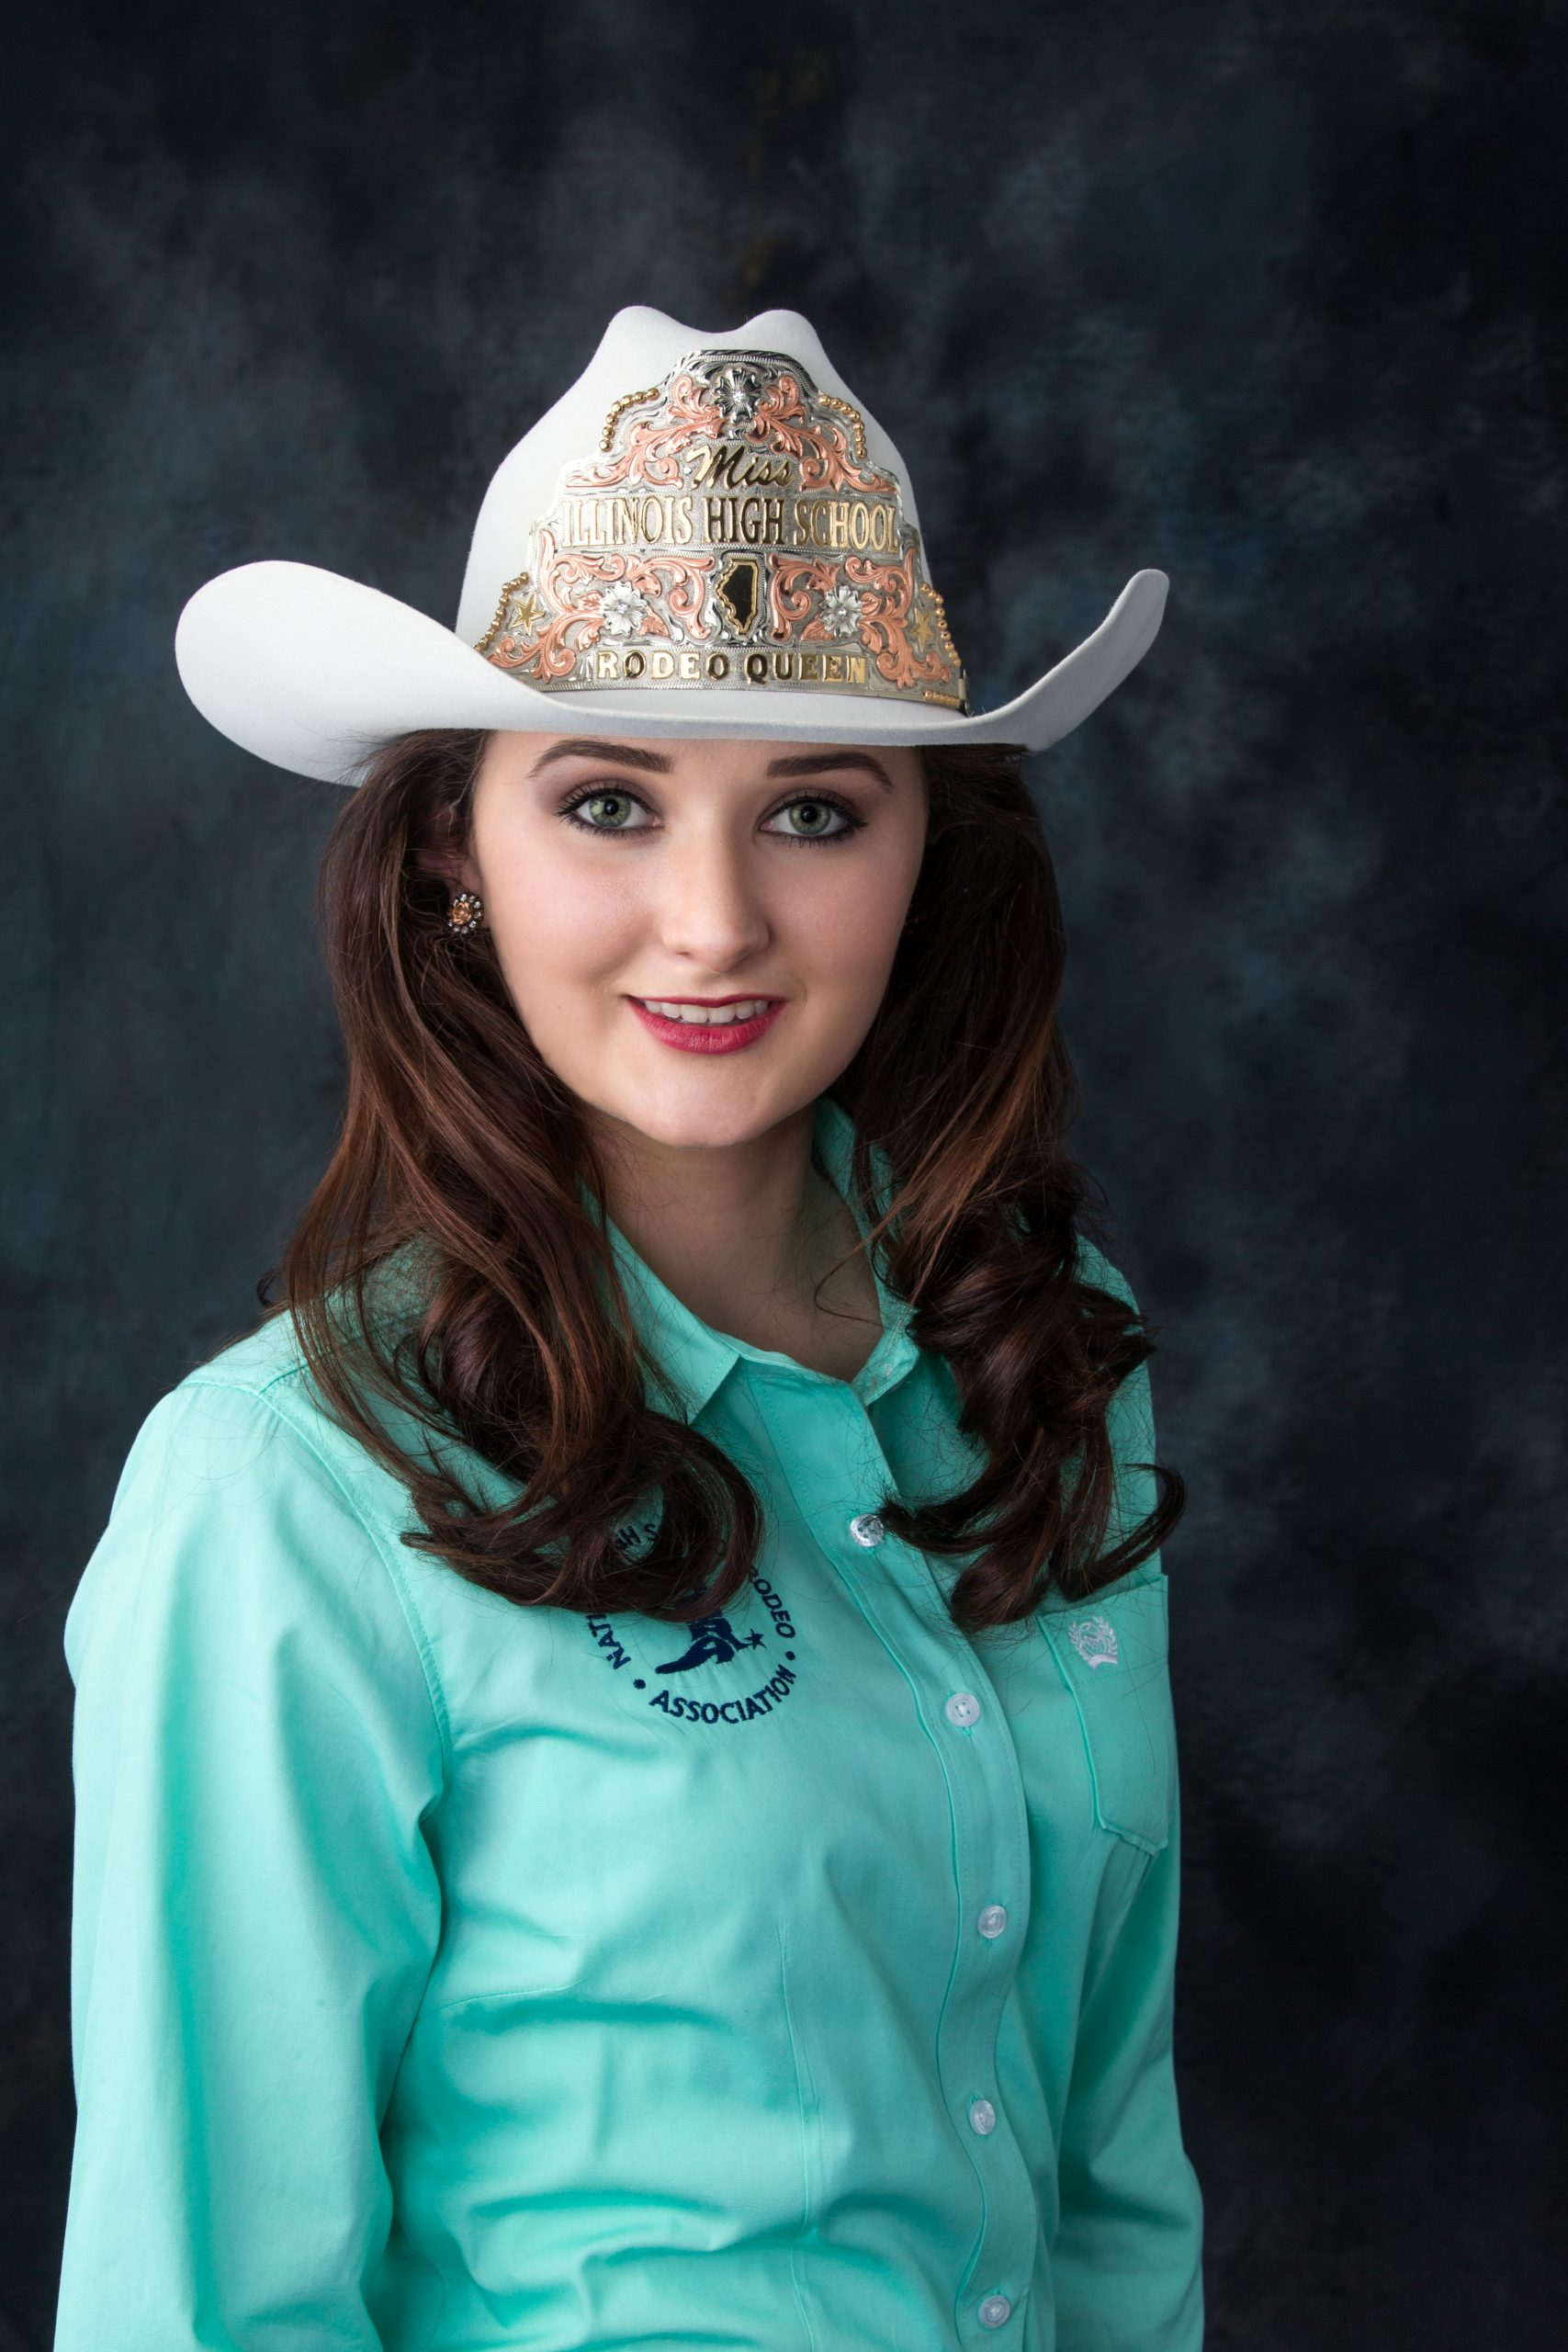 Teutopolis High School Student to Compete in World's Largest Rodeo